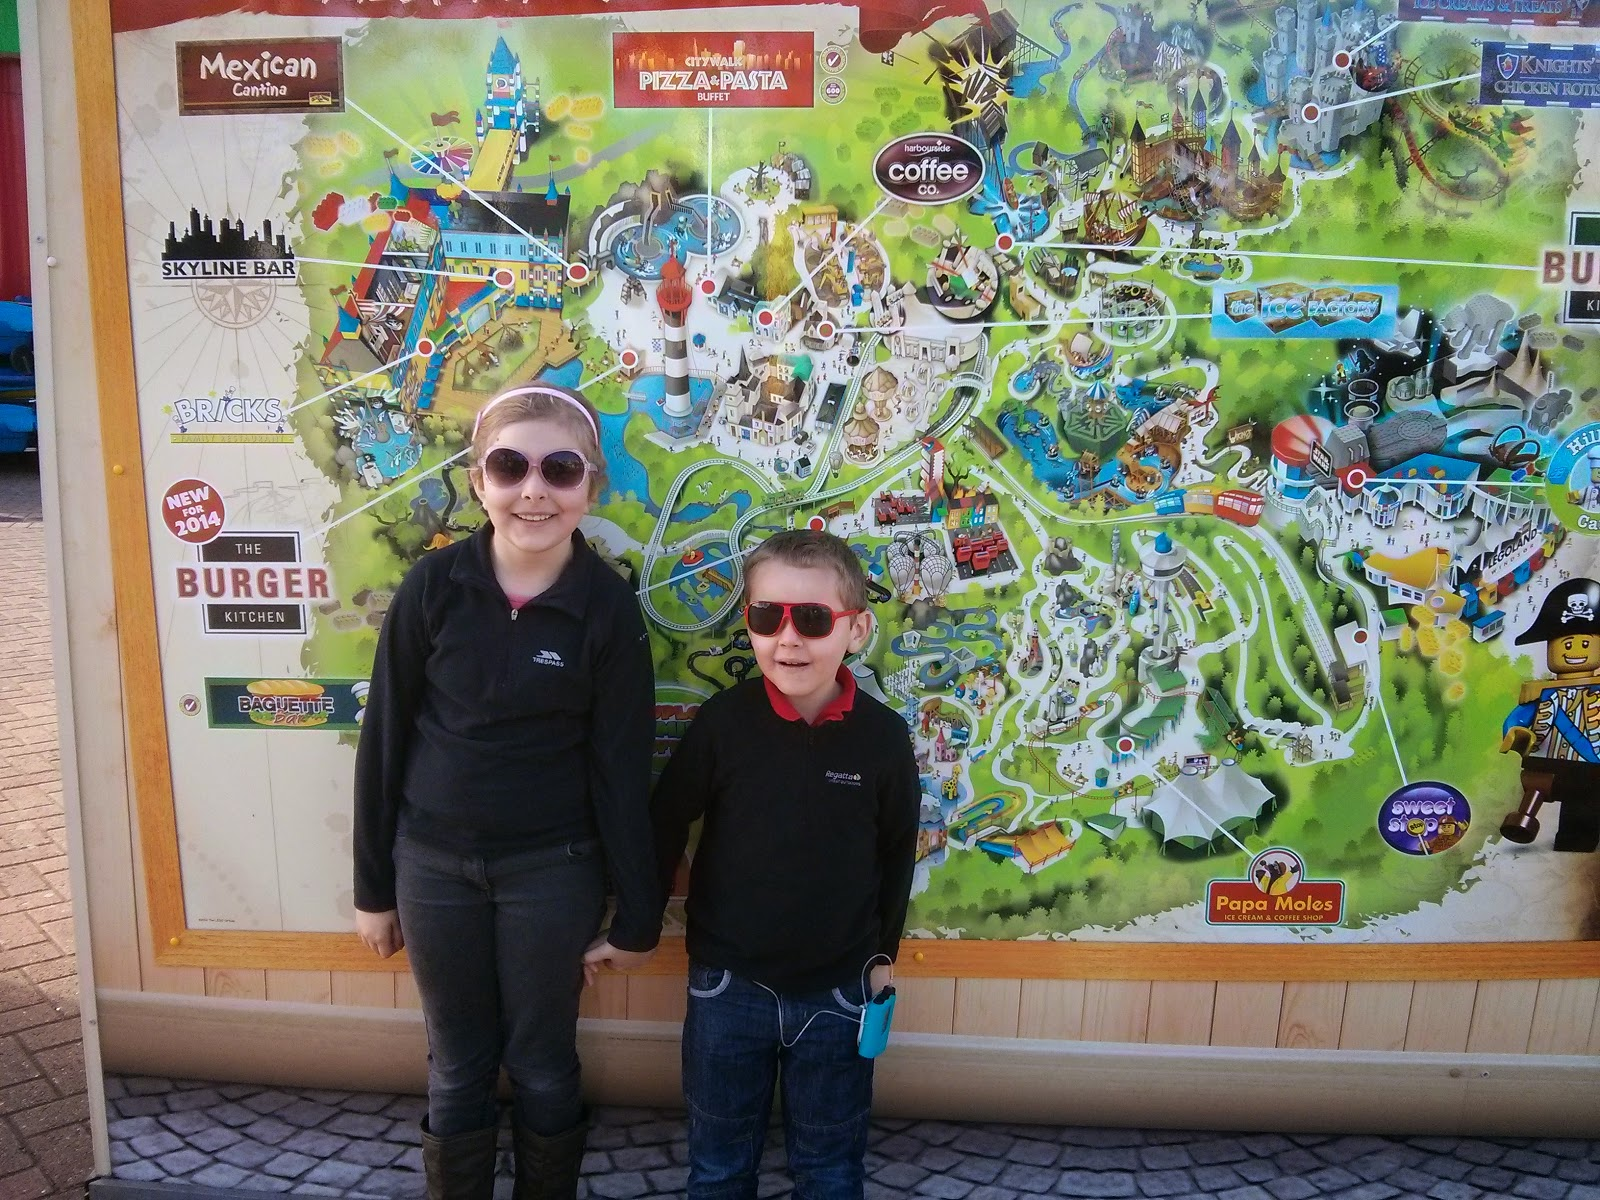 Tips for Family Fun at LEGOLAND Windsor